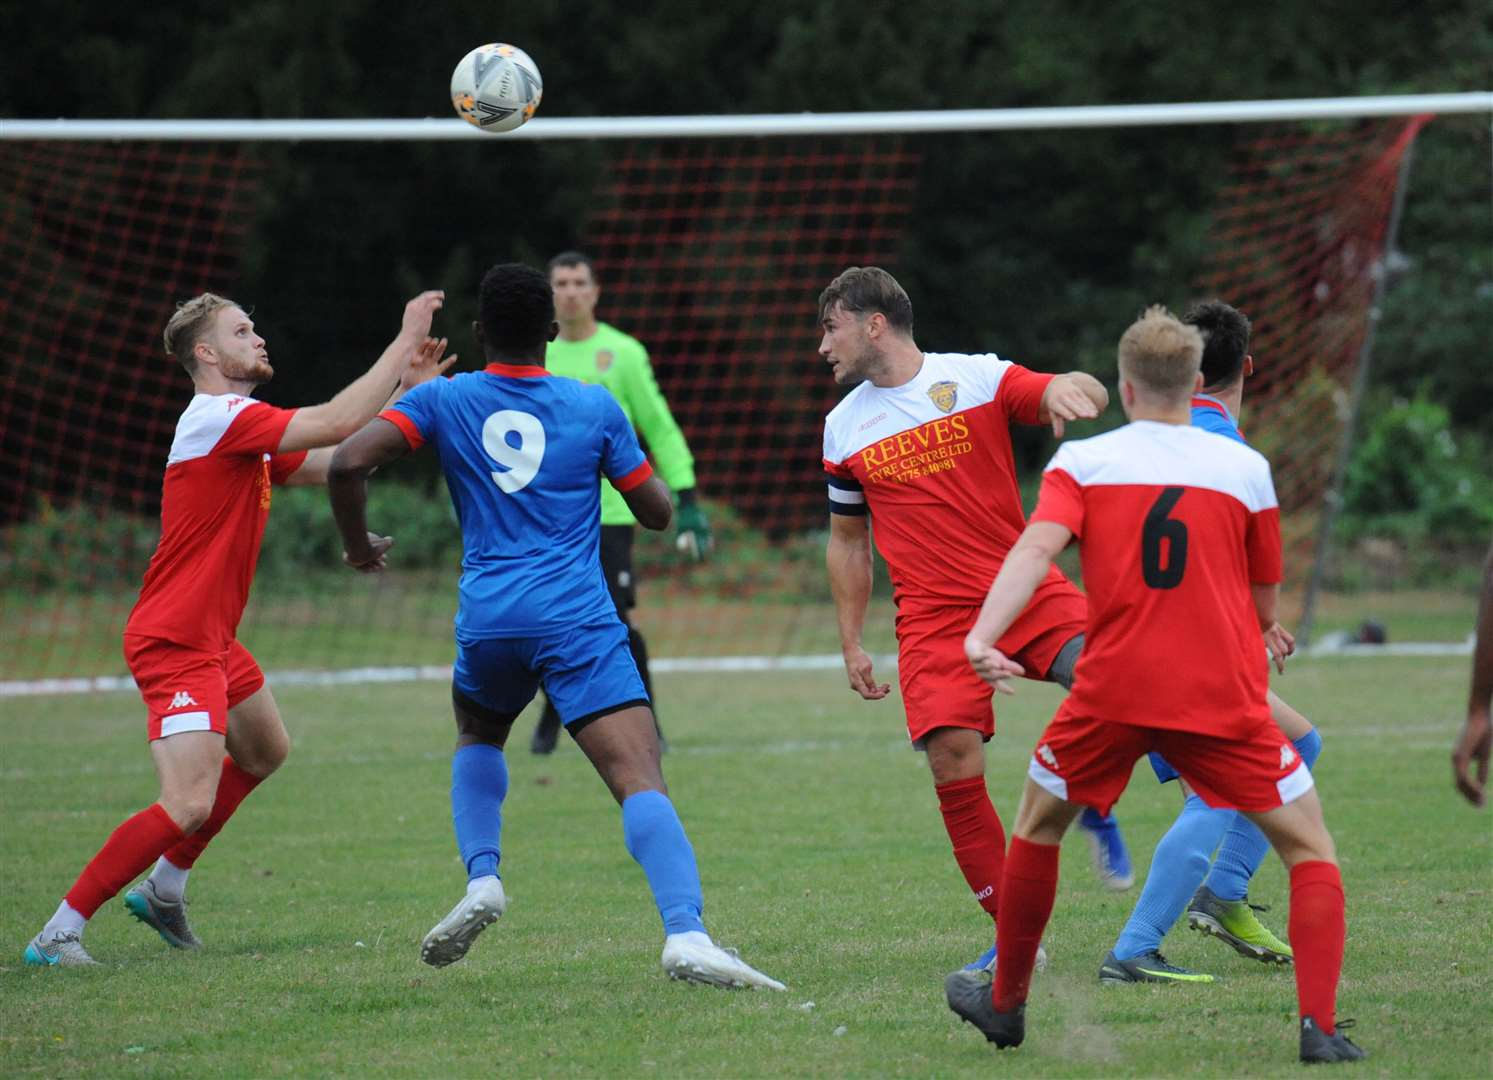 Pinchbeck United held Spalding United to a 1-1 draw in pre-season.